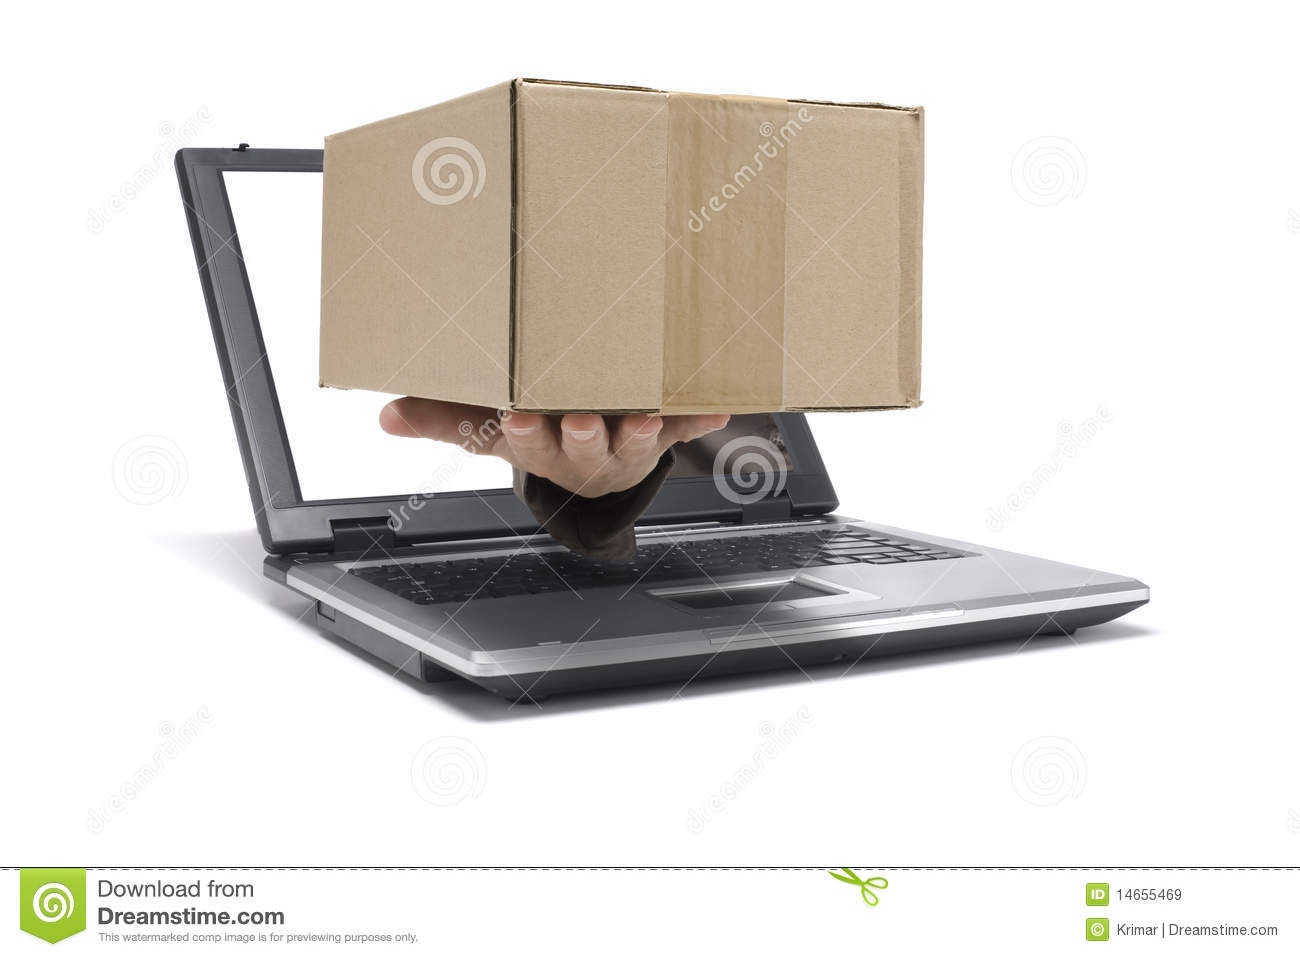 Send a package